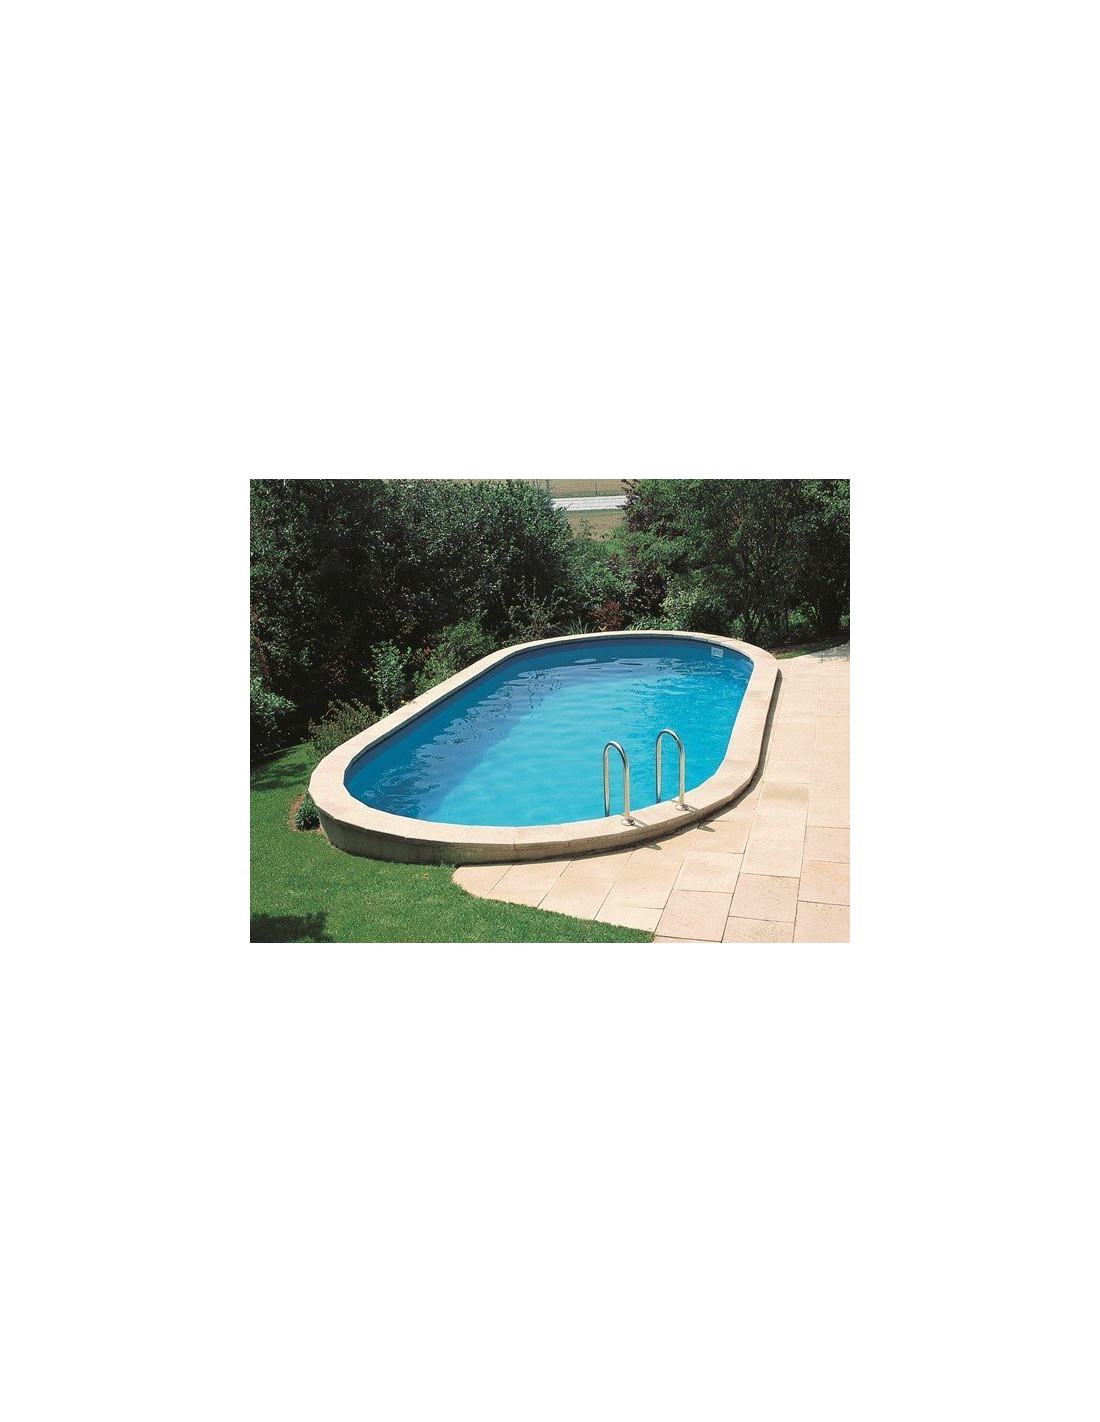 Kit piscine enterr e star pool l 5 8 10 x h 1 20 m for Kit piscine enterree